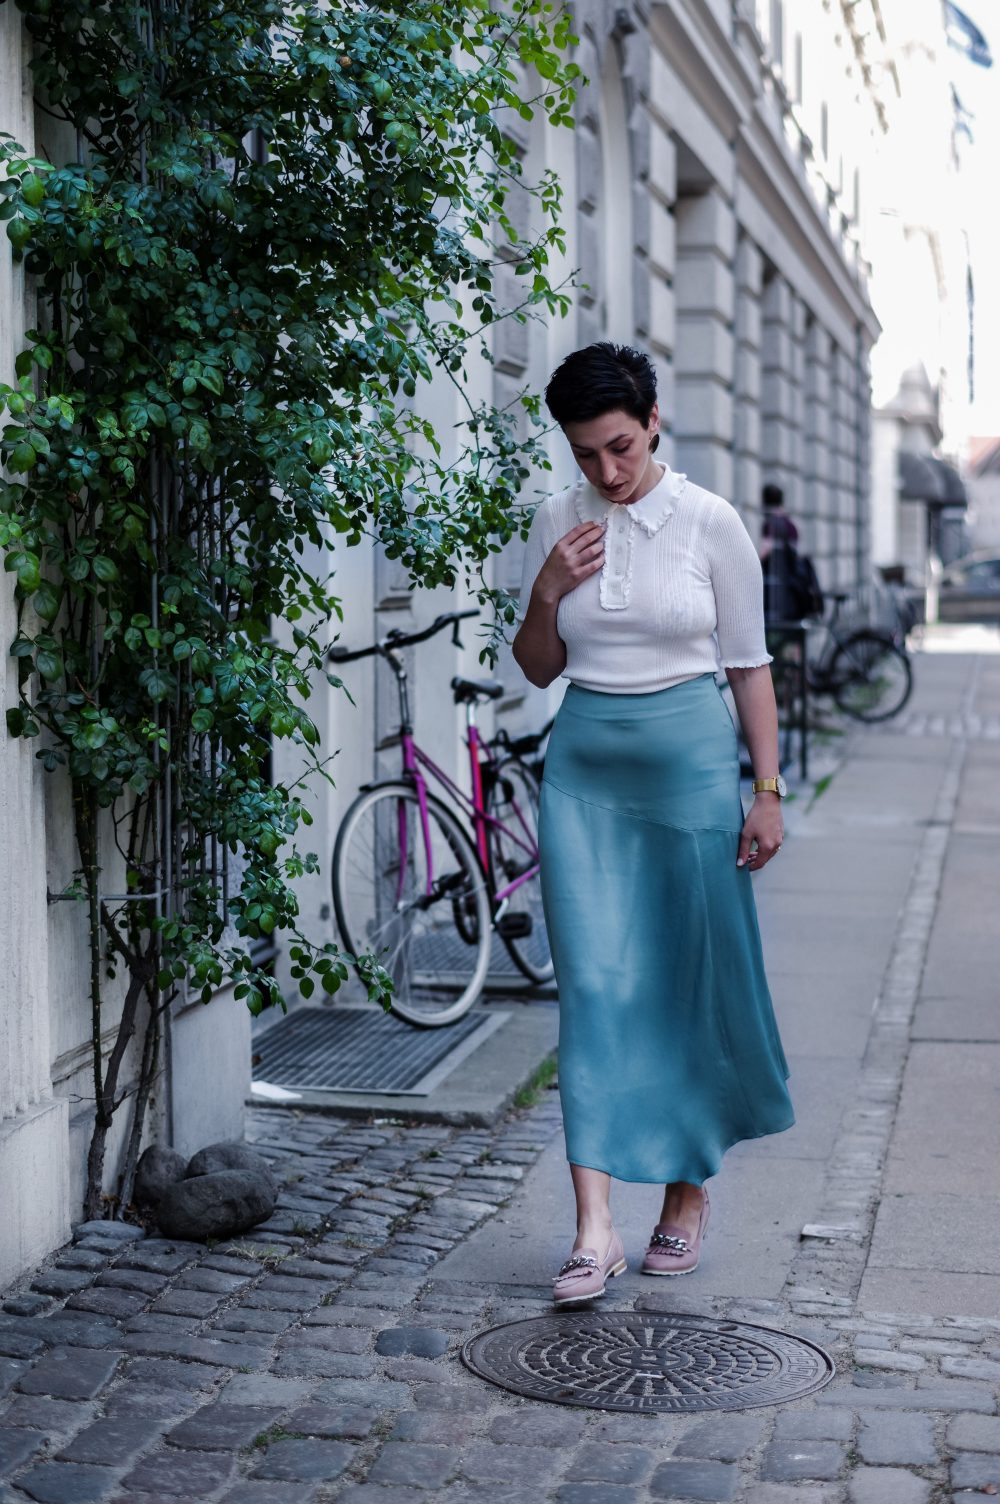 Casual-Spring-Summer-look-for-weekends-stylish-casual-look-spring-outfit-summer-outfit-ideas-maxi-skirt2-mihabalan.com